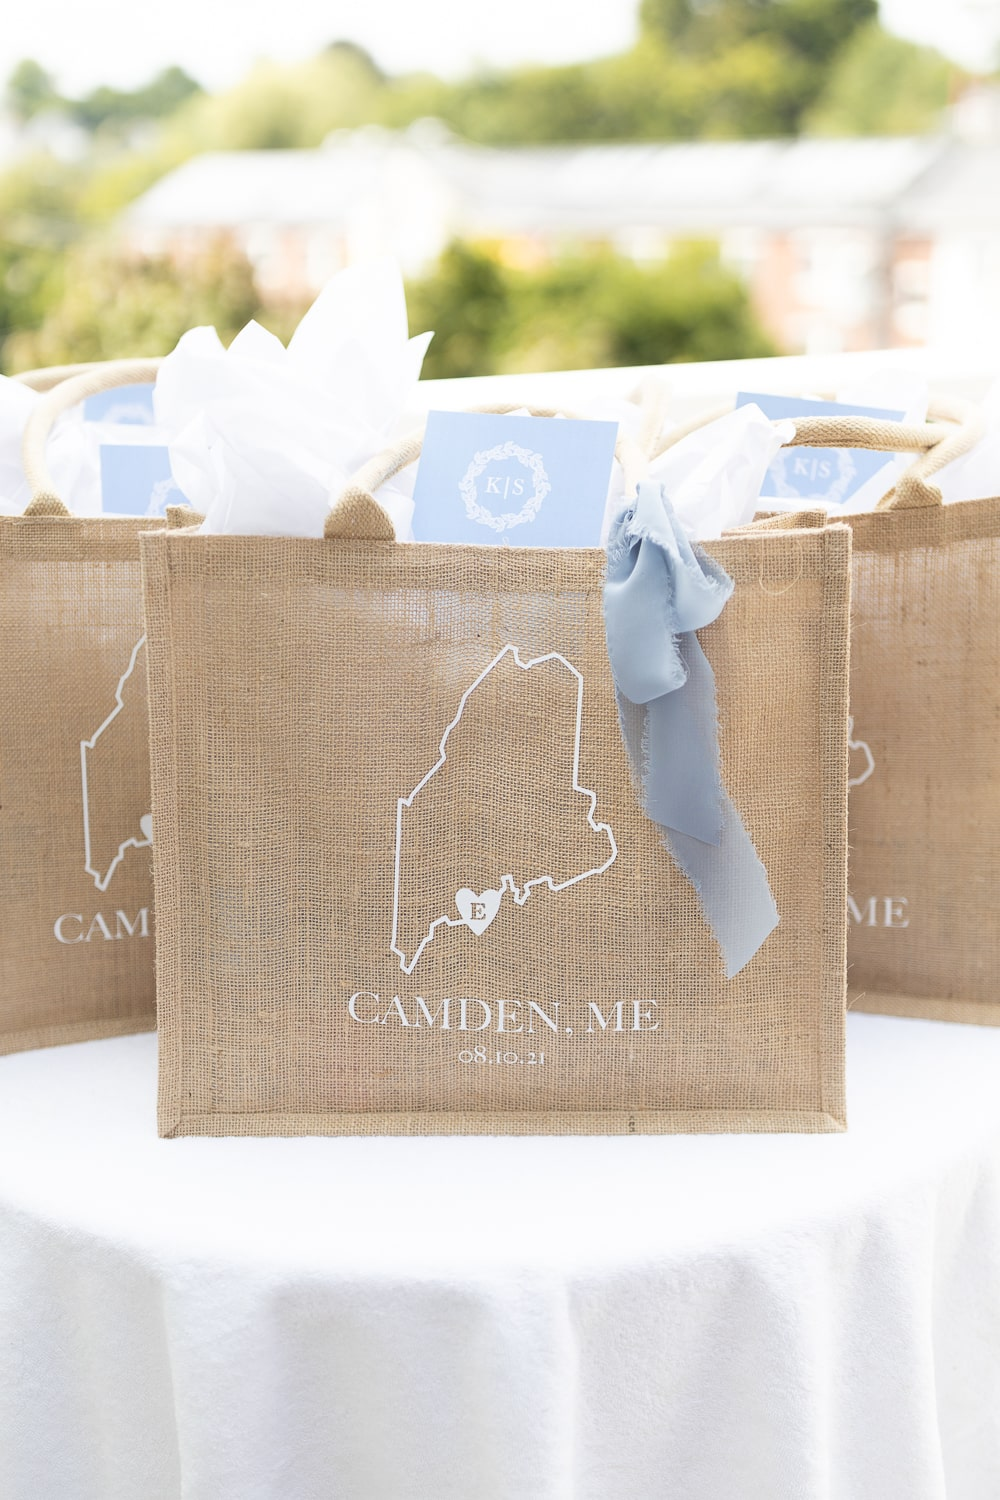 DIY Maine wedding welcome bags created by DIY blogger Stephanie Ziajka on Diary of a Debutante